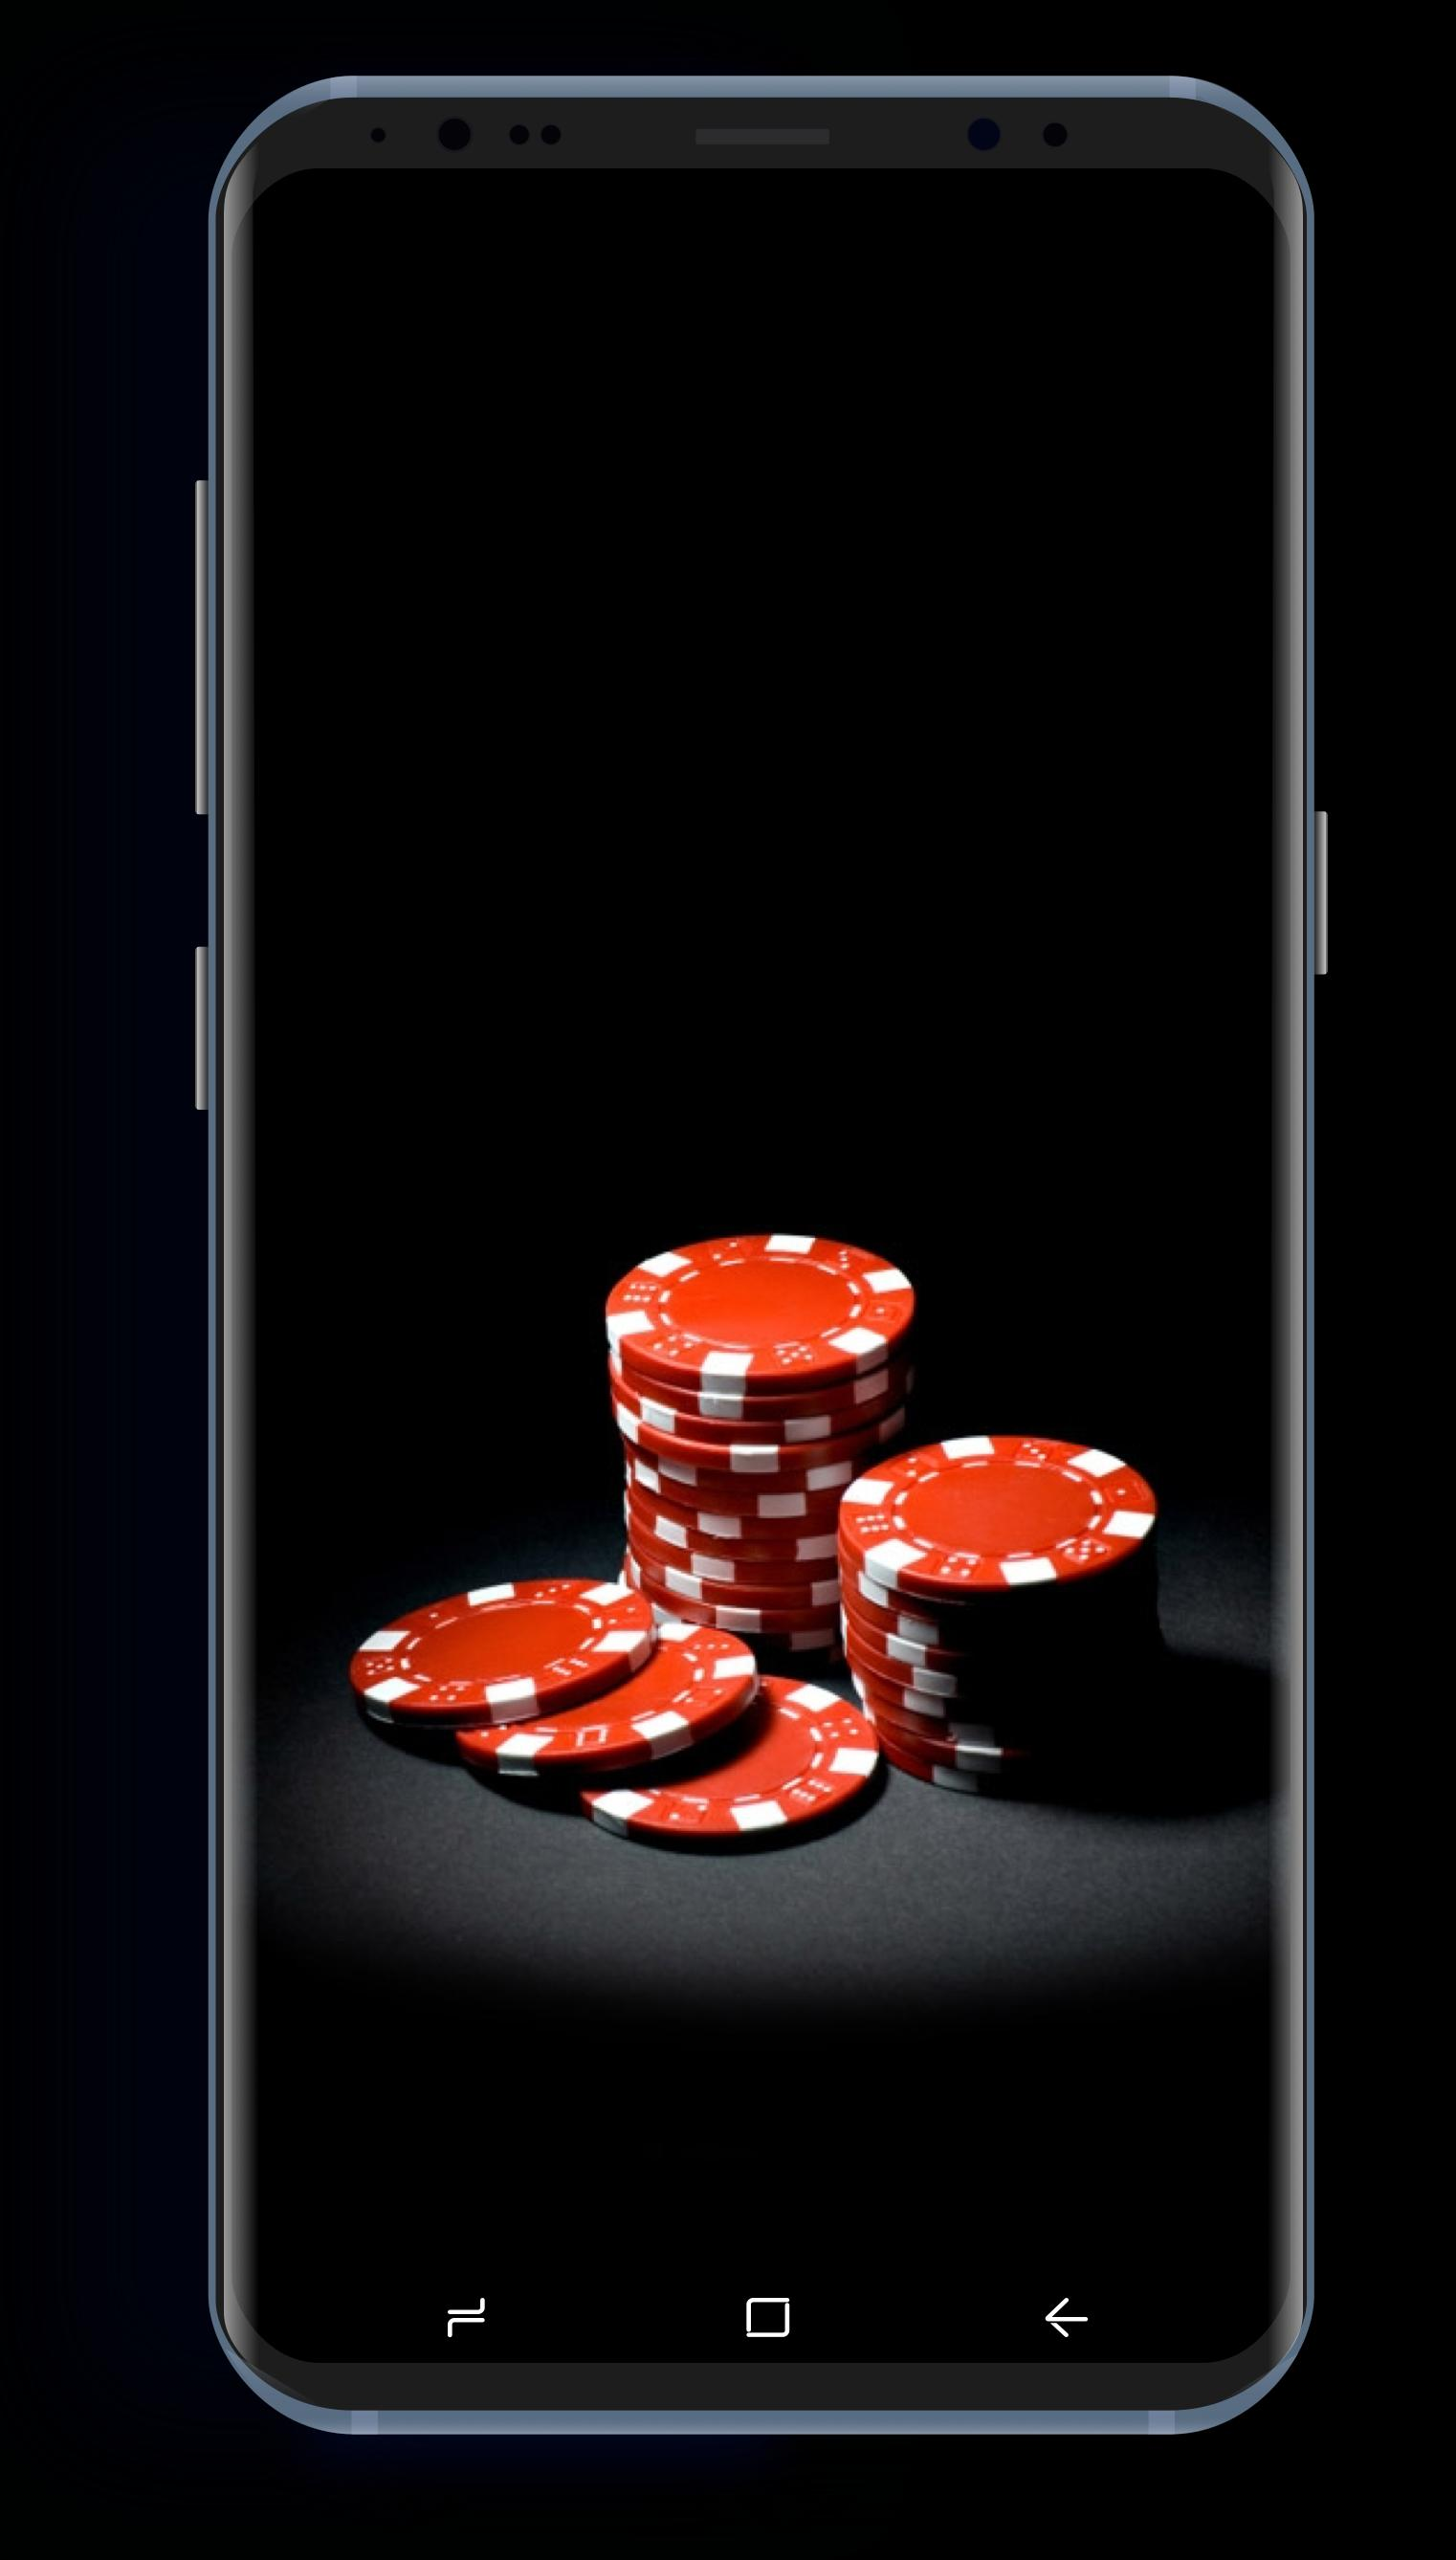 Teen Patti Poker Hd Wallpapers For Android Apk Download